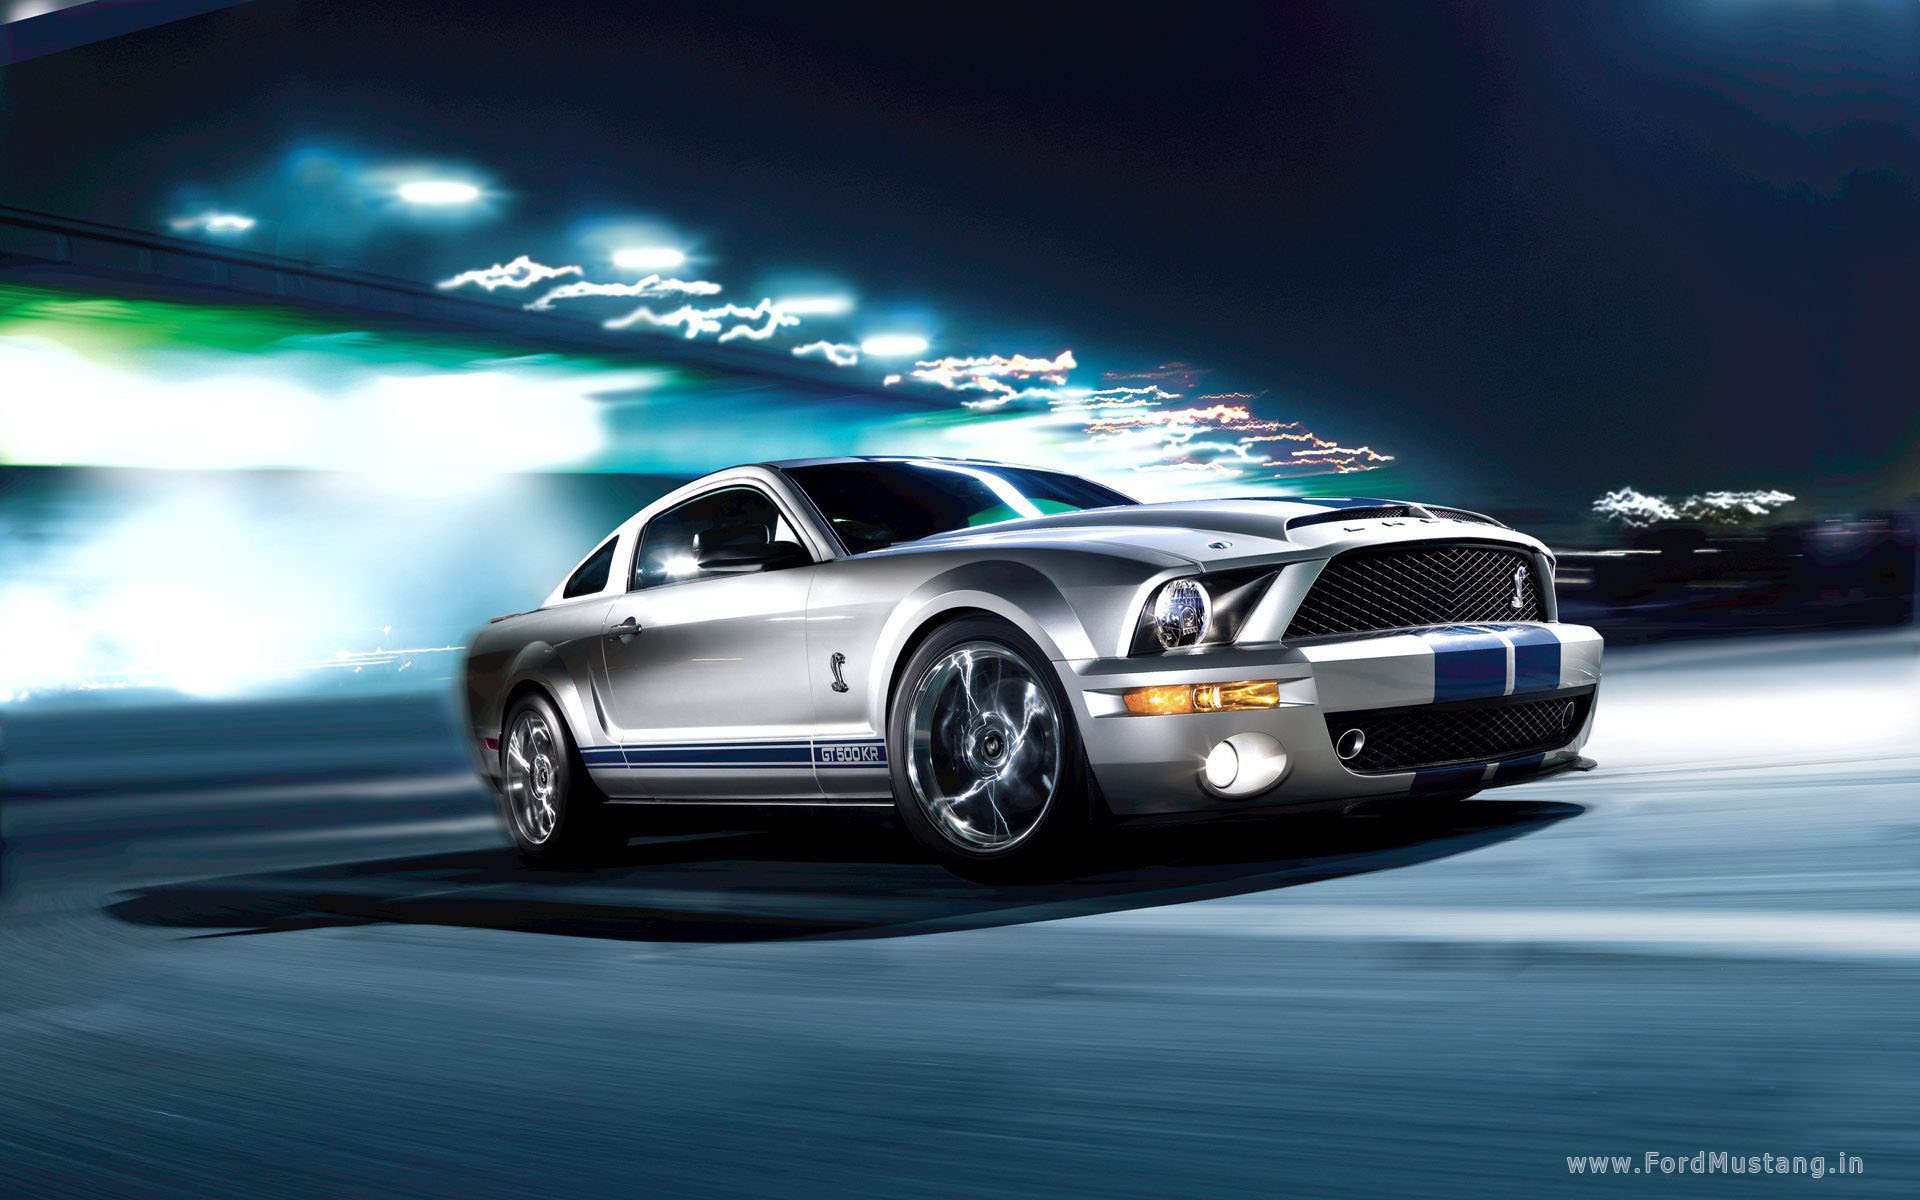 Mustang wallpapers HQ High quality Ford Mustang Ford Mustang 1920x1200